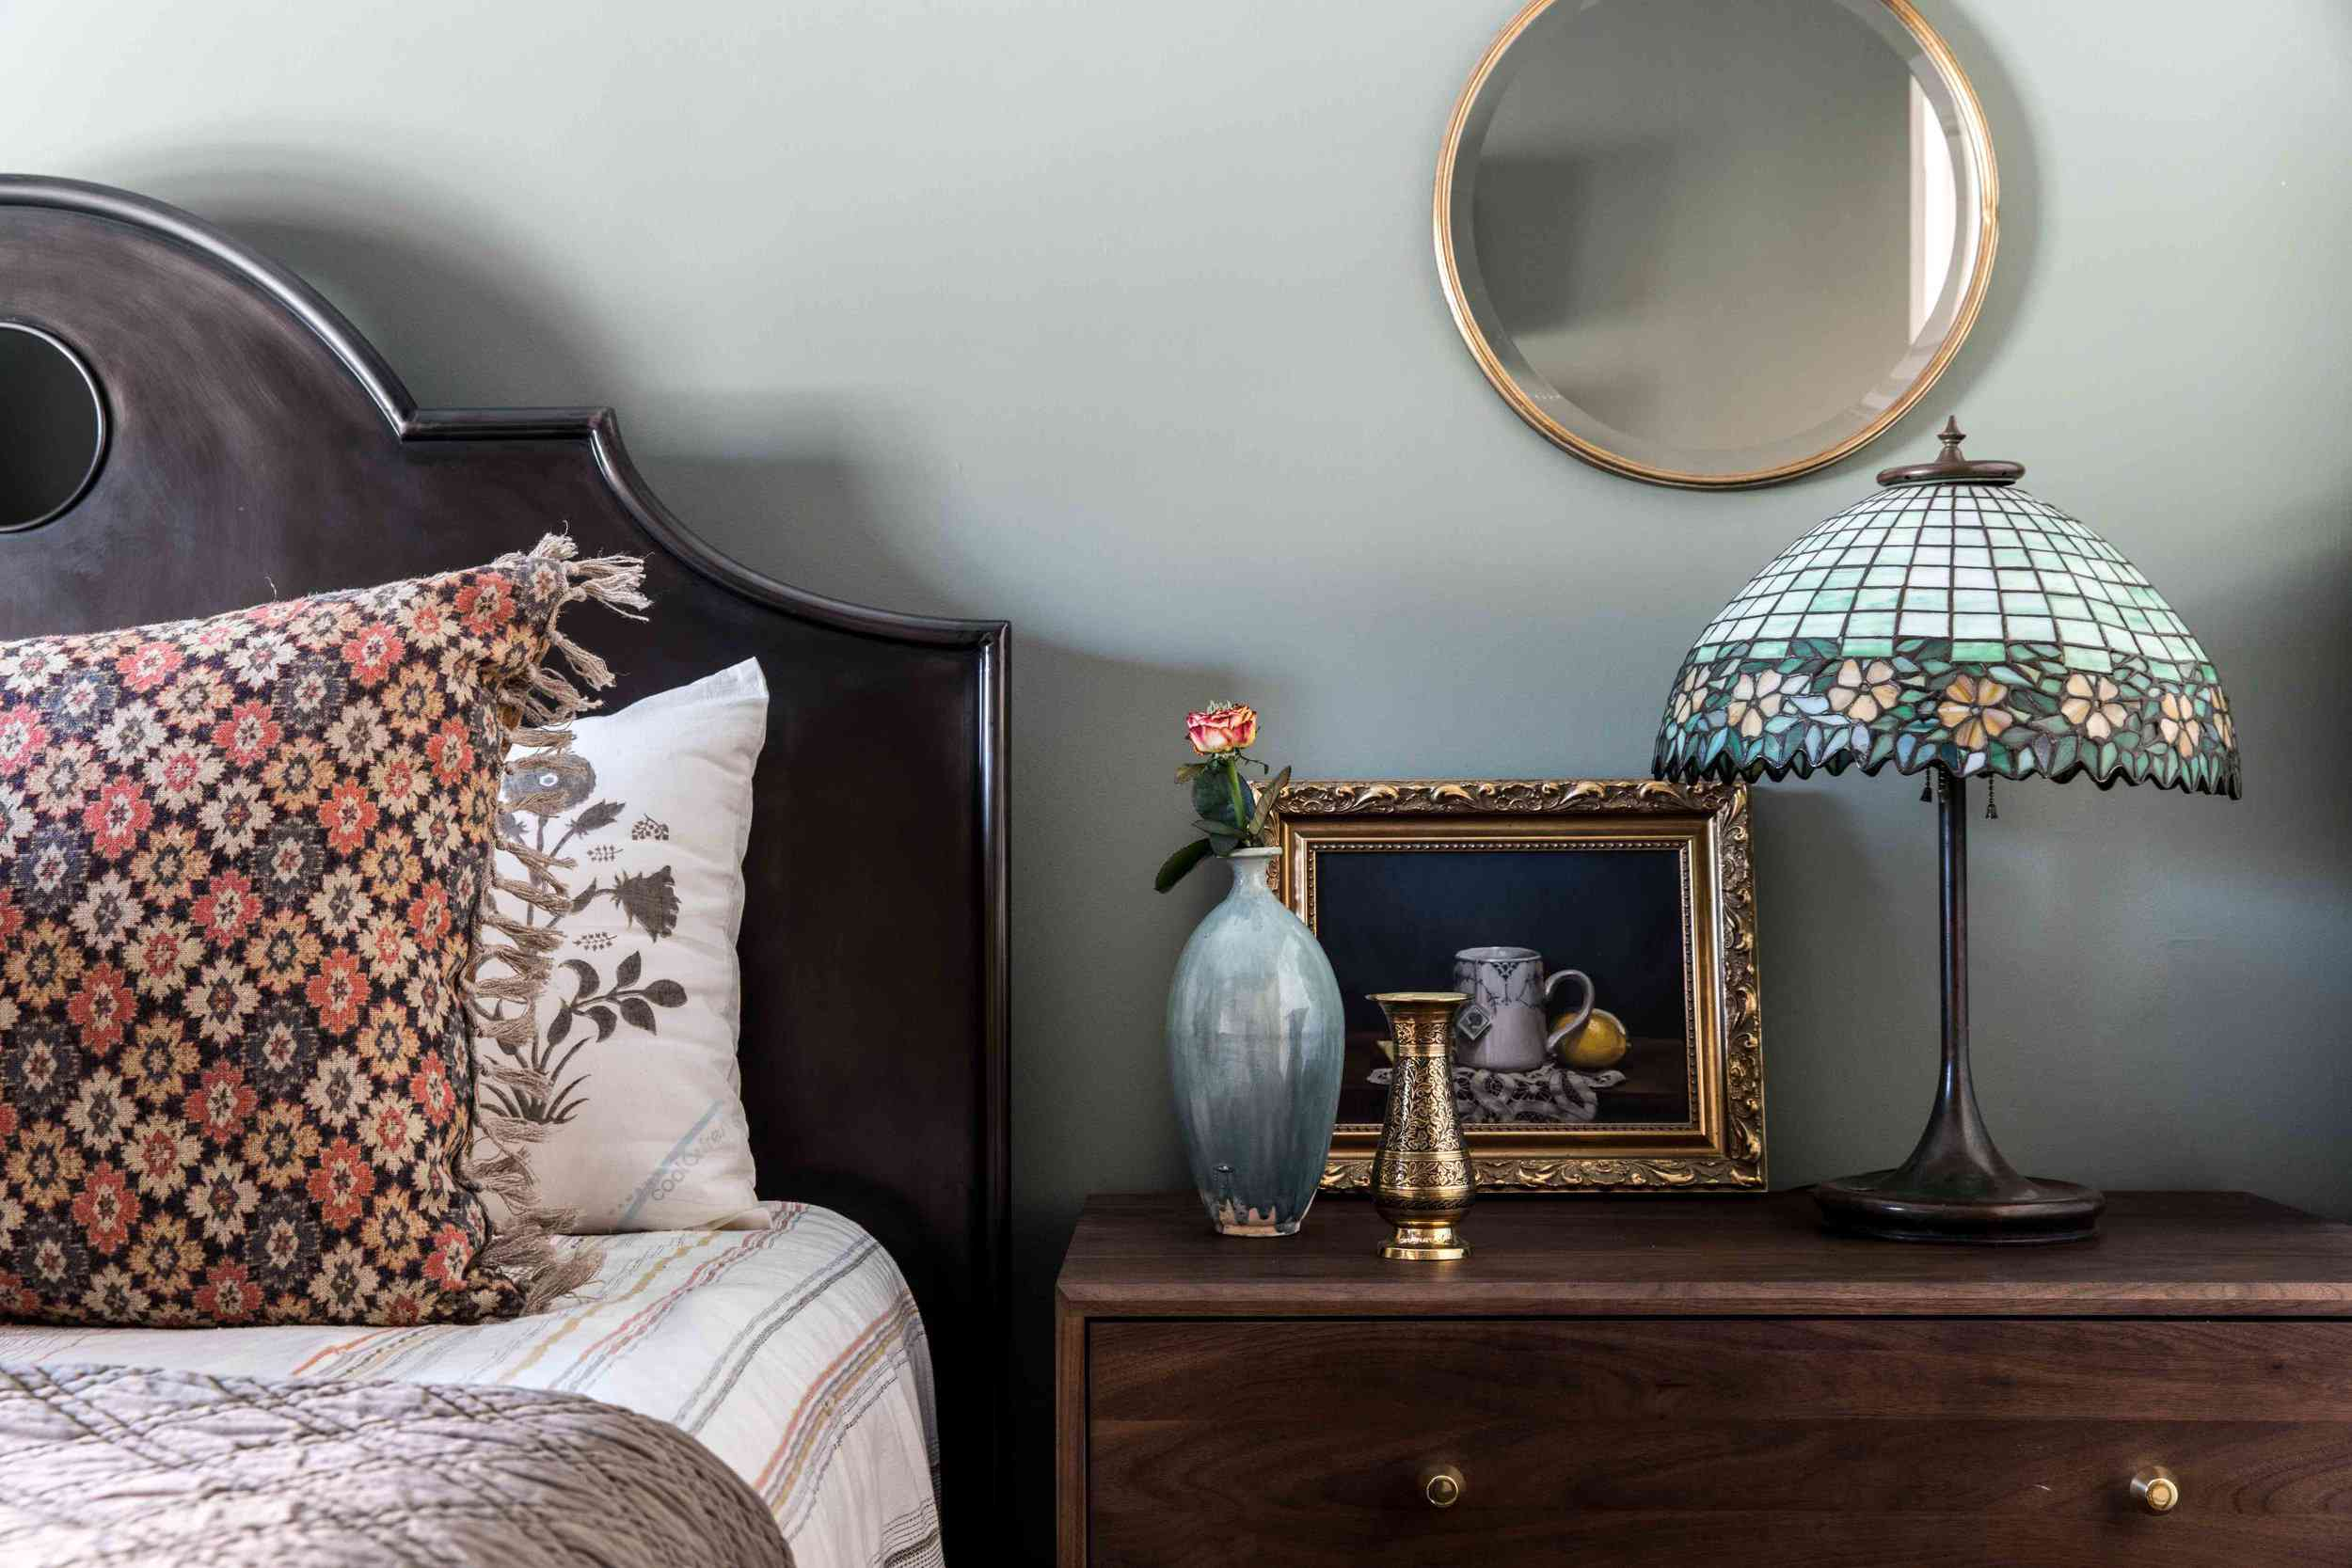 Traditional bedroom nightstand area with gray-green walls